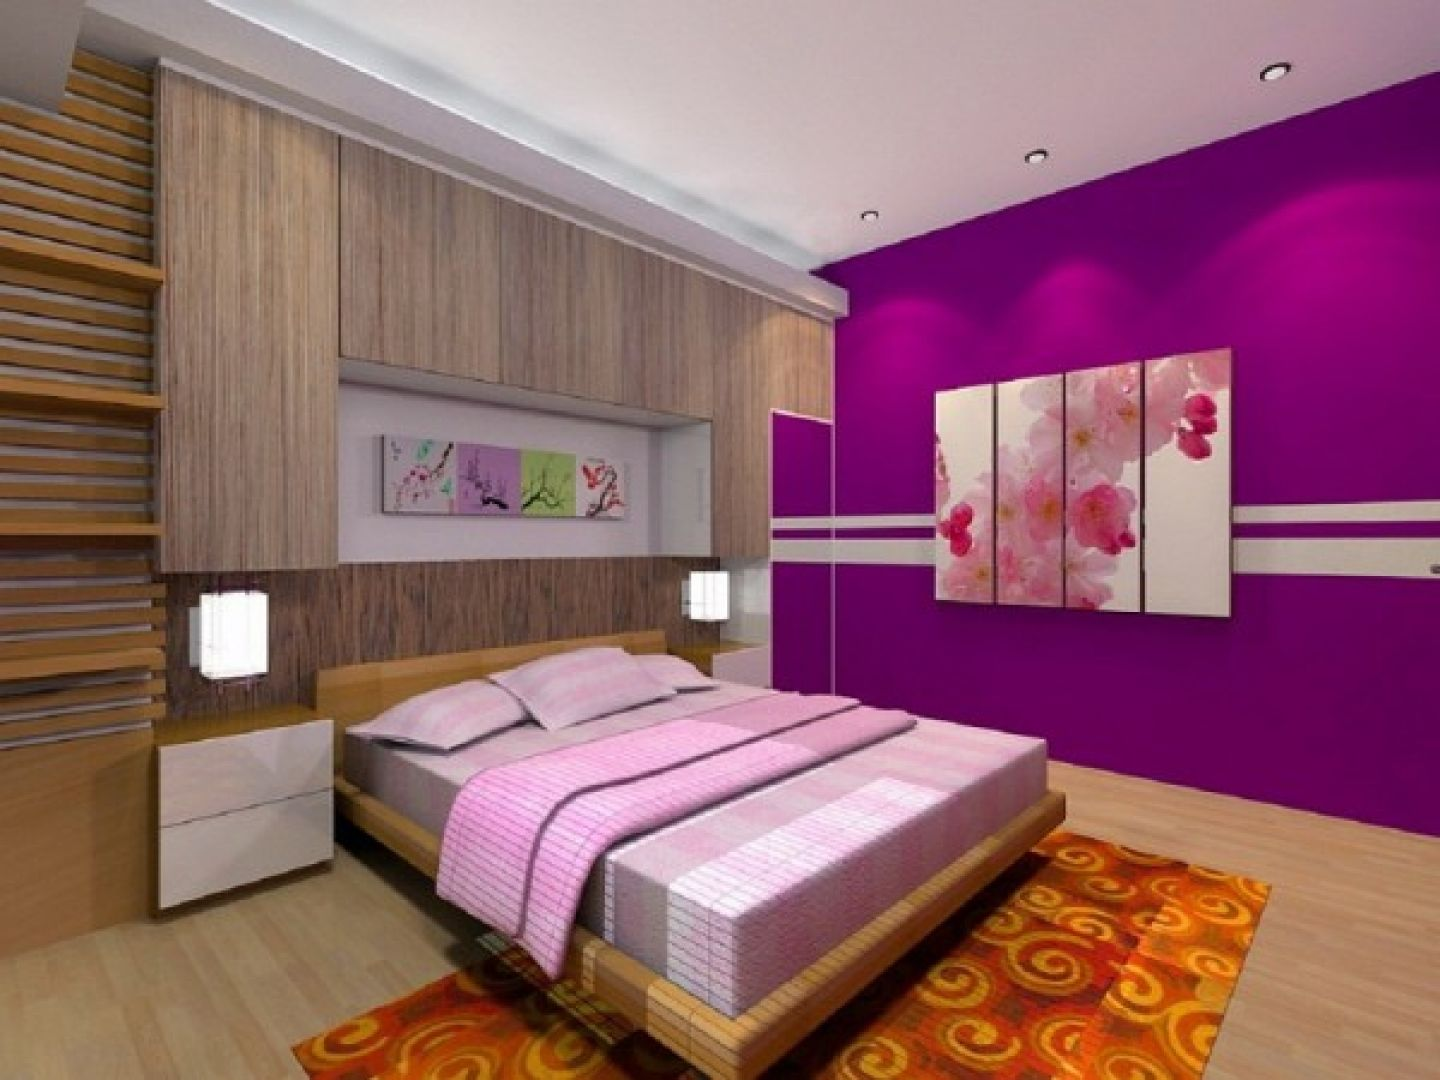 Bedroom cool bedroom design for women in their 20s with purple color schemes and modern